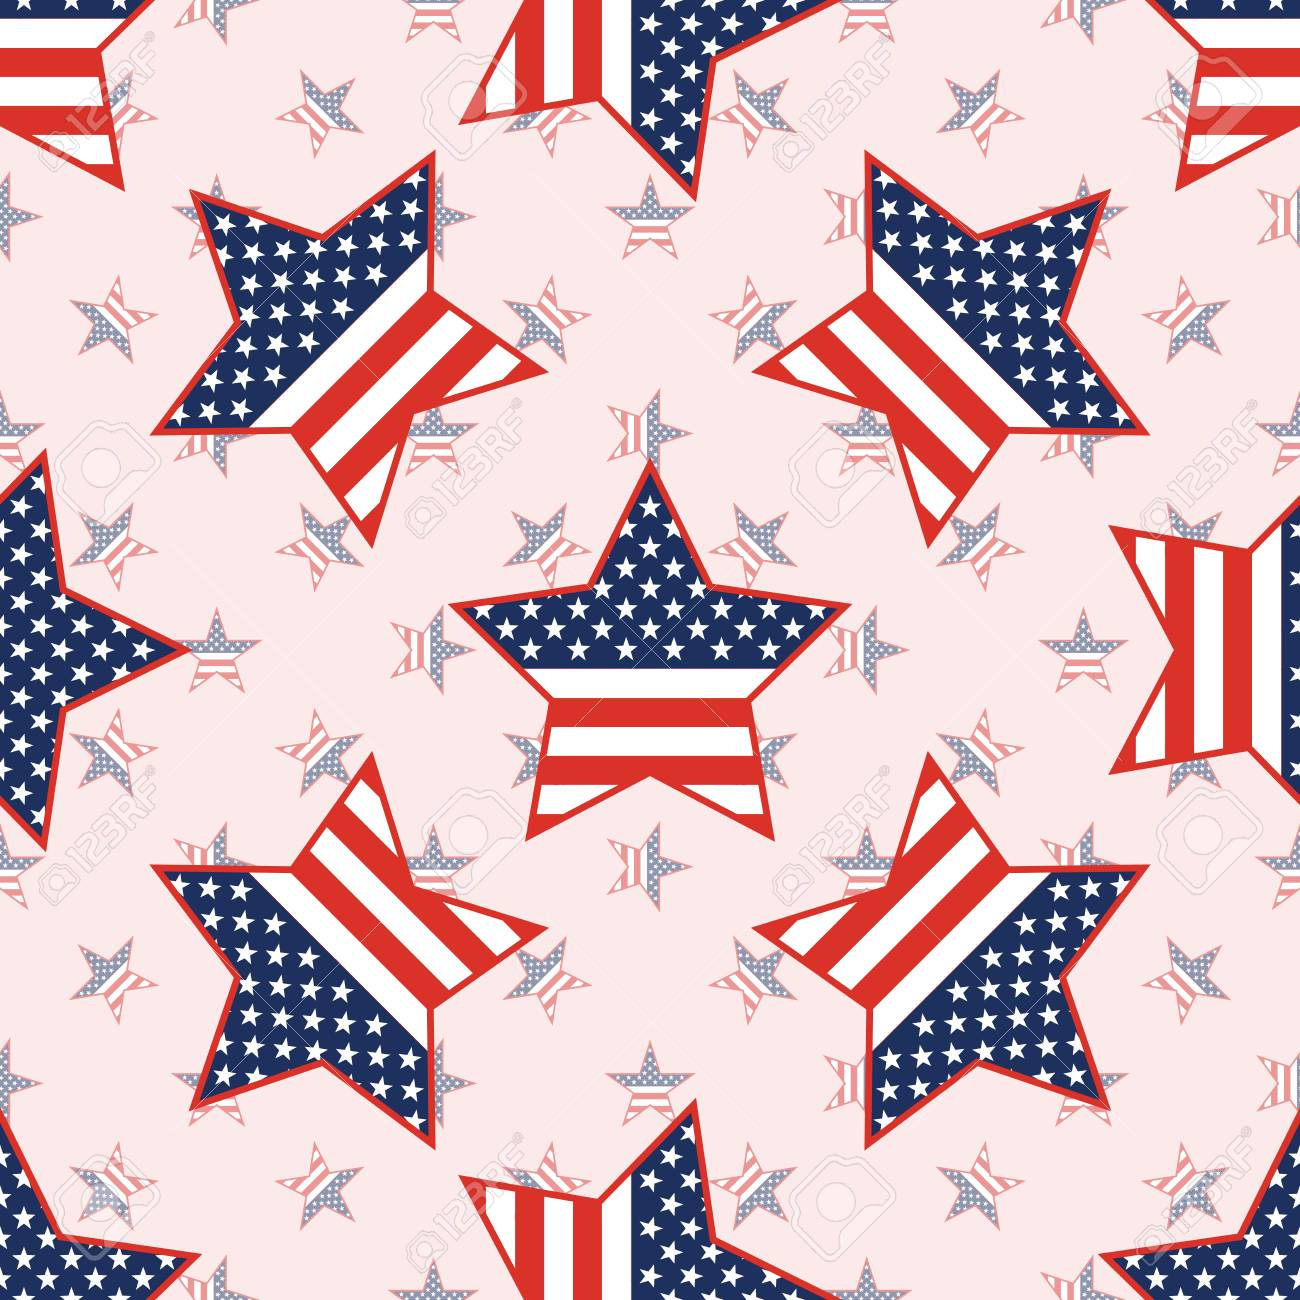 USA patriotic stars seamless pattern on national stars background. American patriotic wallpaper with USA patriotic